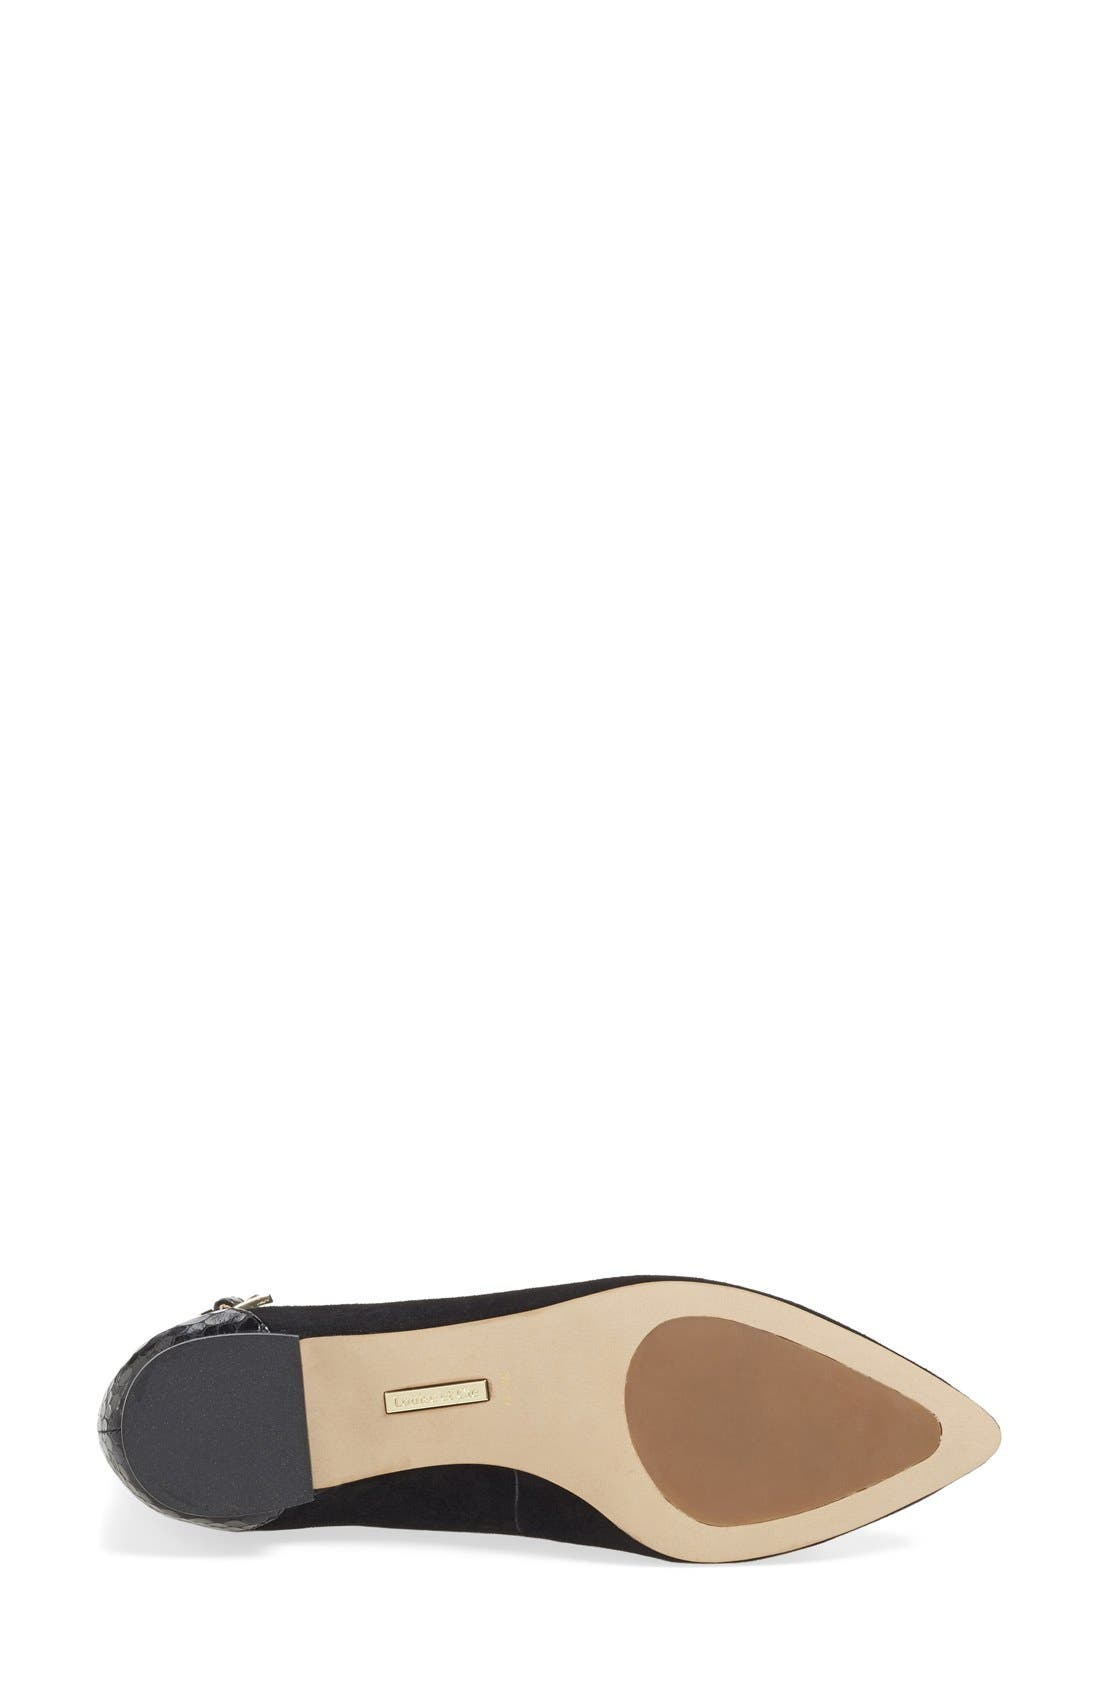 LOUISE ET CIE,                             'Barry' Ankle Strap Flat,                             Alternate thumbnail 3, color,                             001